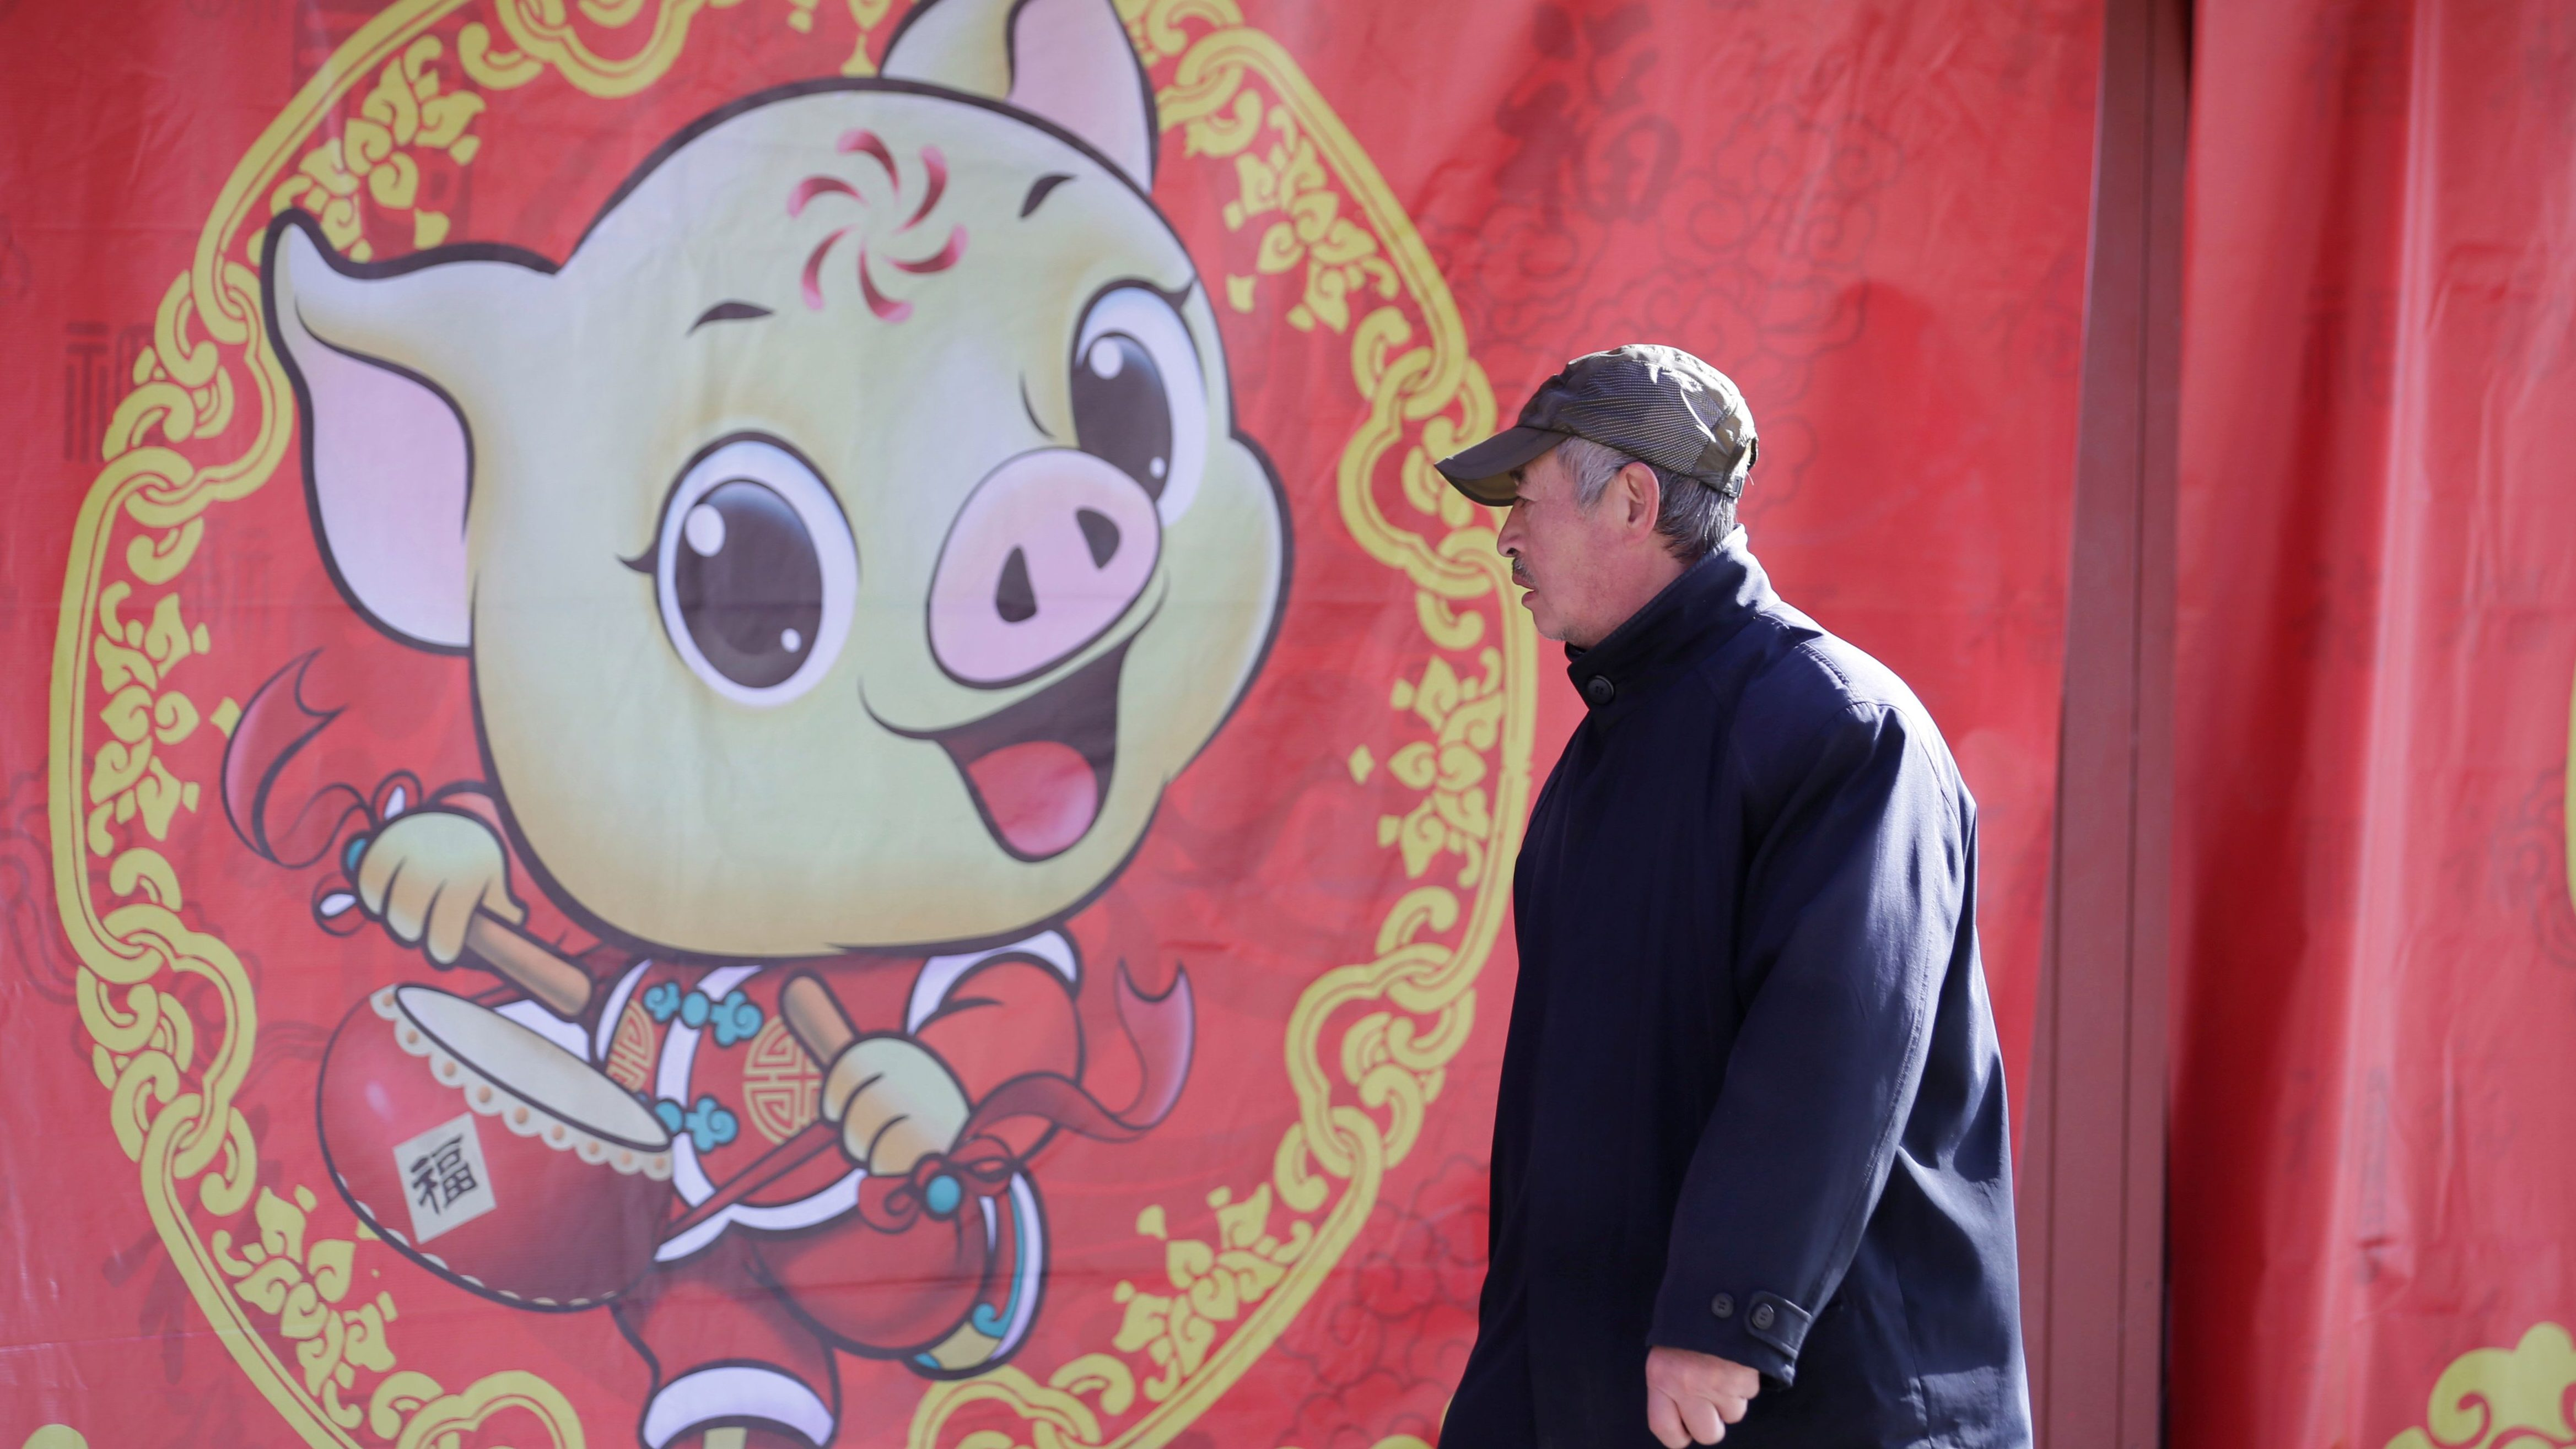 A man walks past a poster celebrating the upcoming Lunar New Year of the Pig at Ditan Park in Beijing, China January 28, 2019.